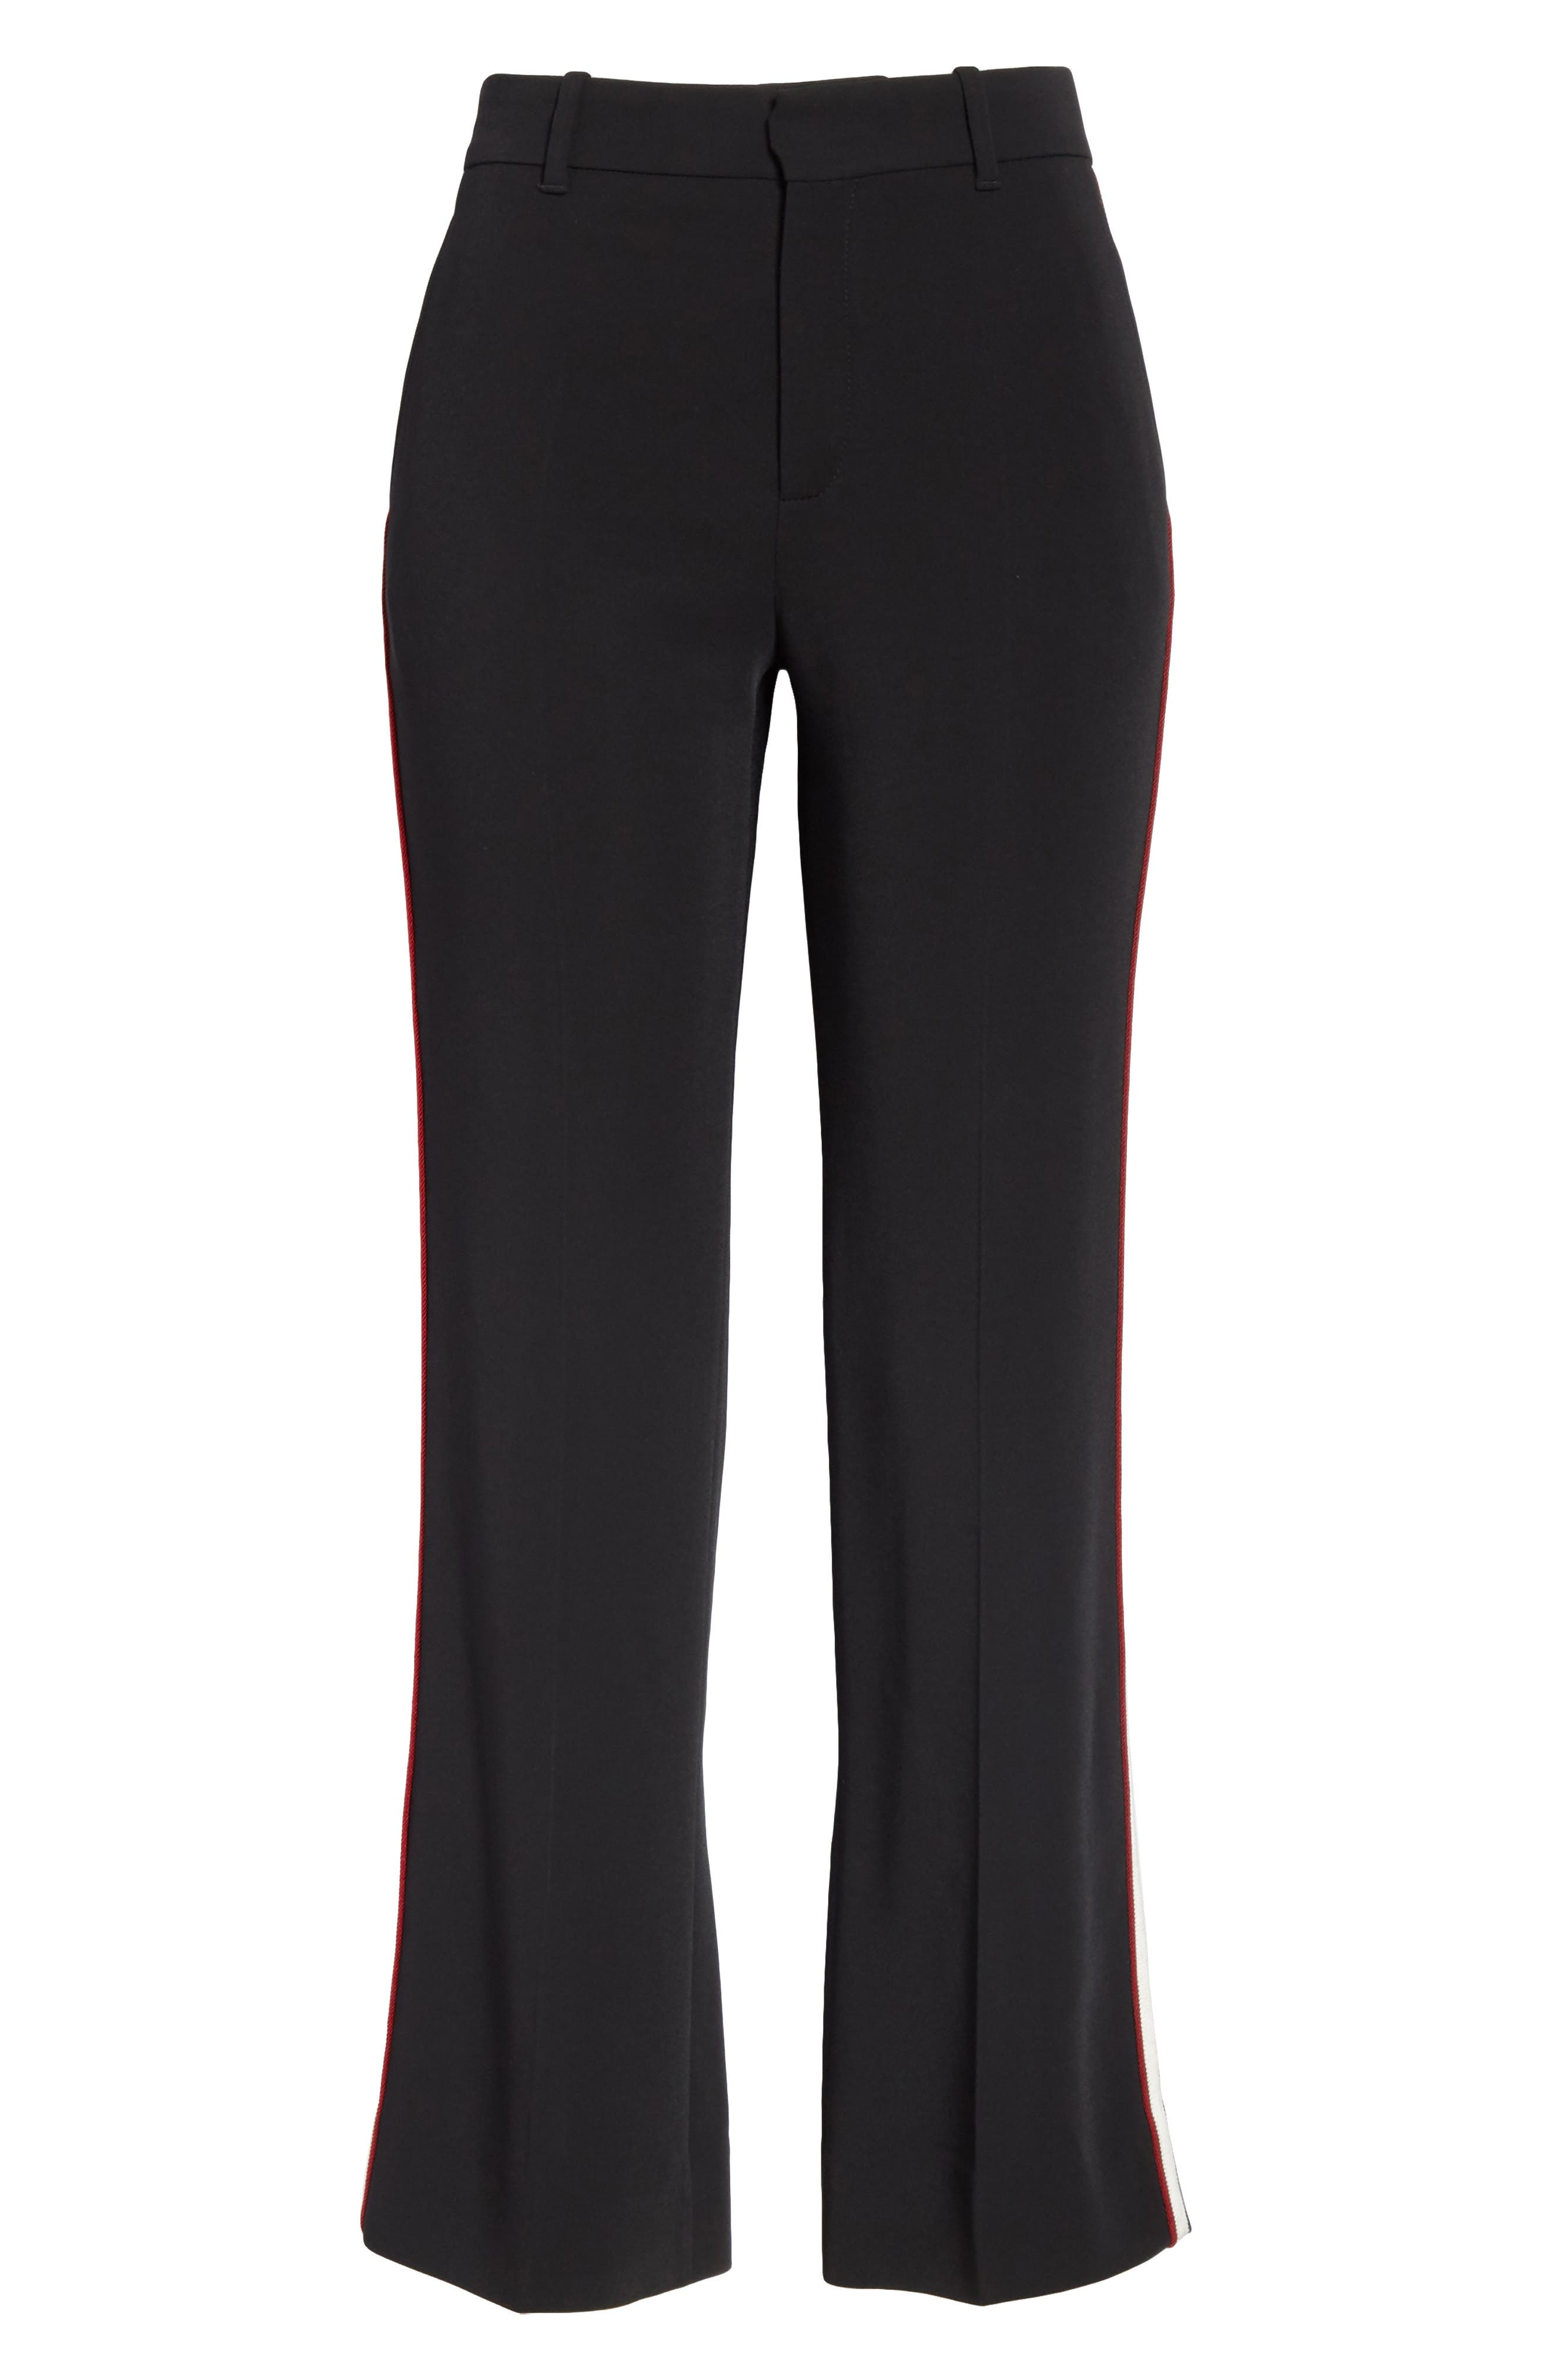 GUCCI,                             Side Stripe Stretch Cady Crop Flare Pants,                             Alternate thumbnail 3, color,                             BLACK